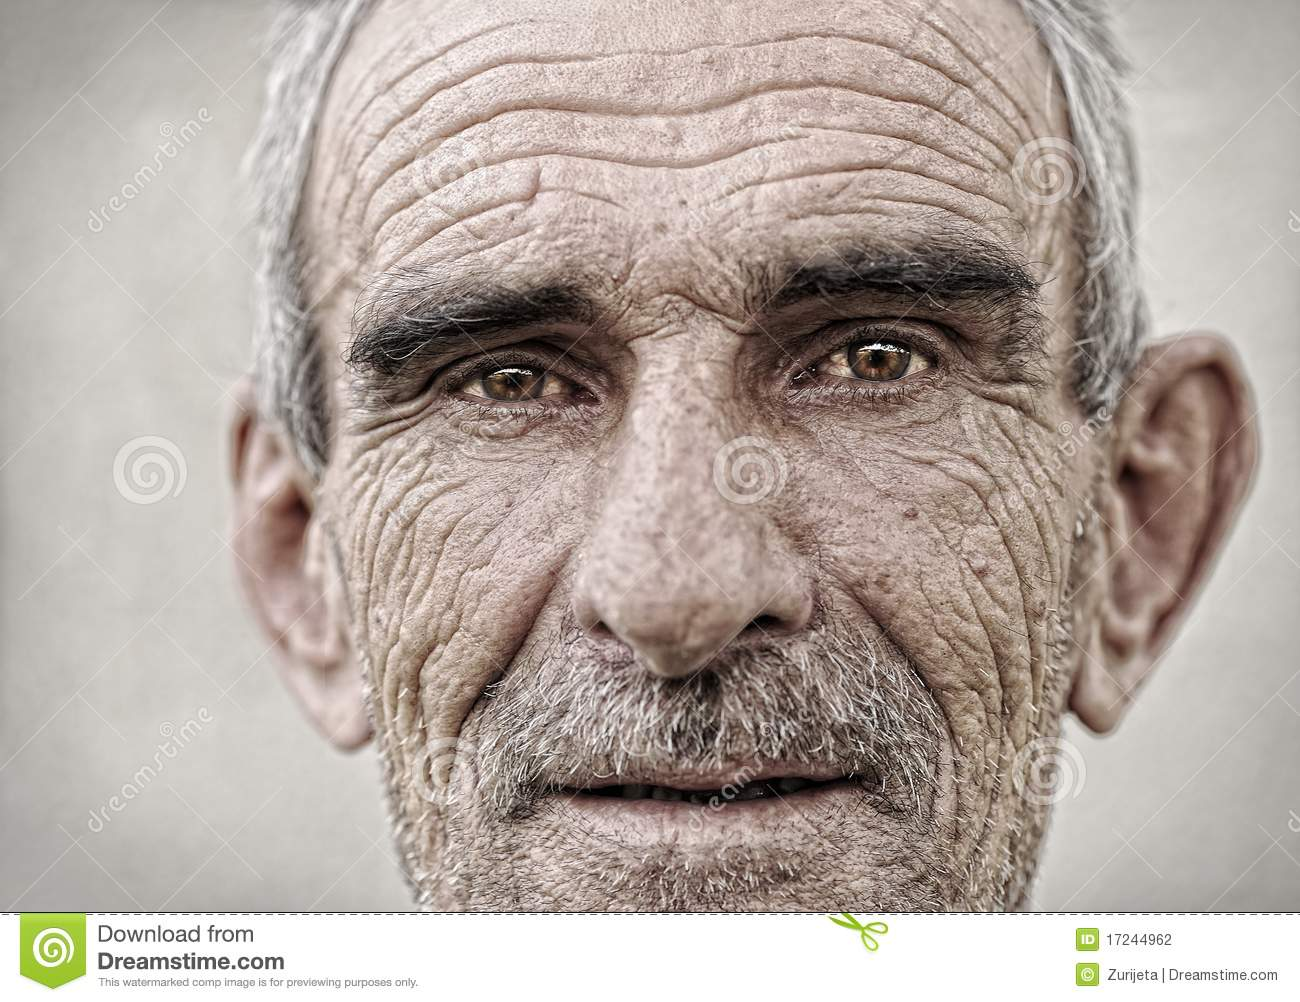 Elderly, old, mature man portrait